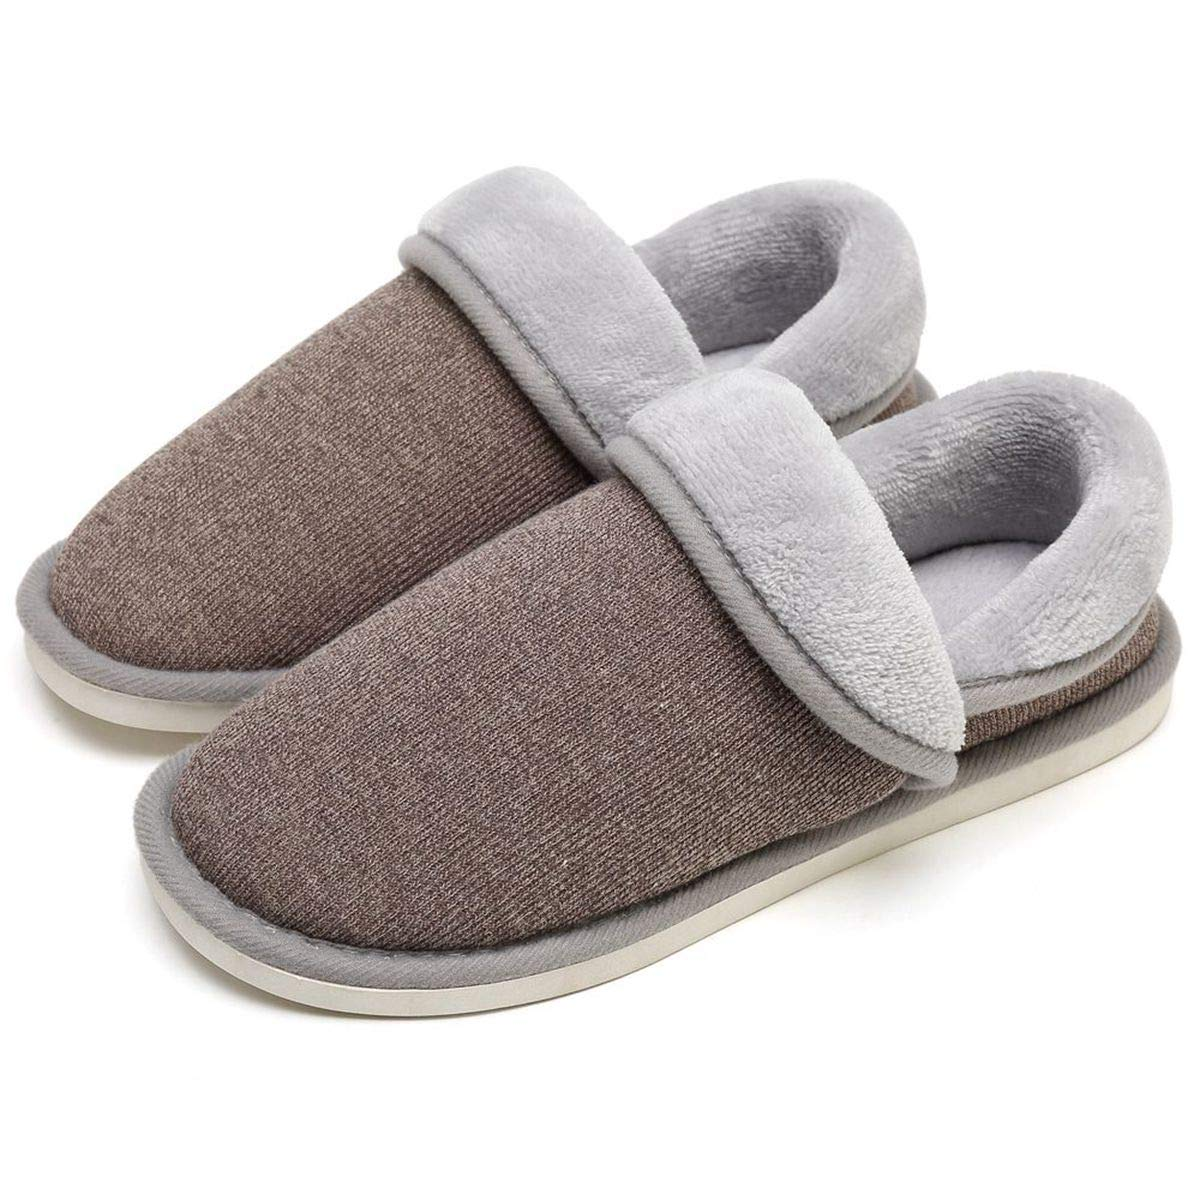 SOSUSHOE Unisex Cozy House Slippers, Fluffy Foldable Boots Winter, Moccasin Slippers Shoes Indoor Outdoor